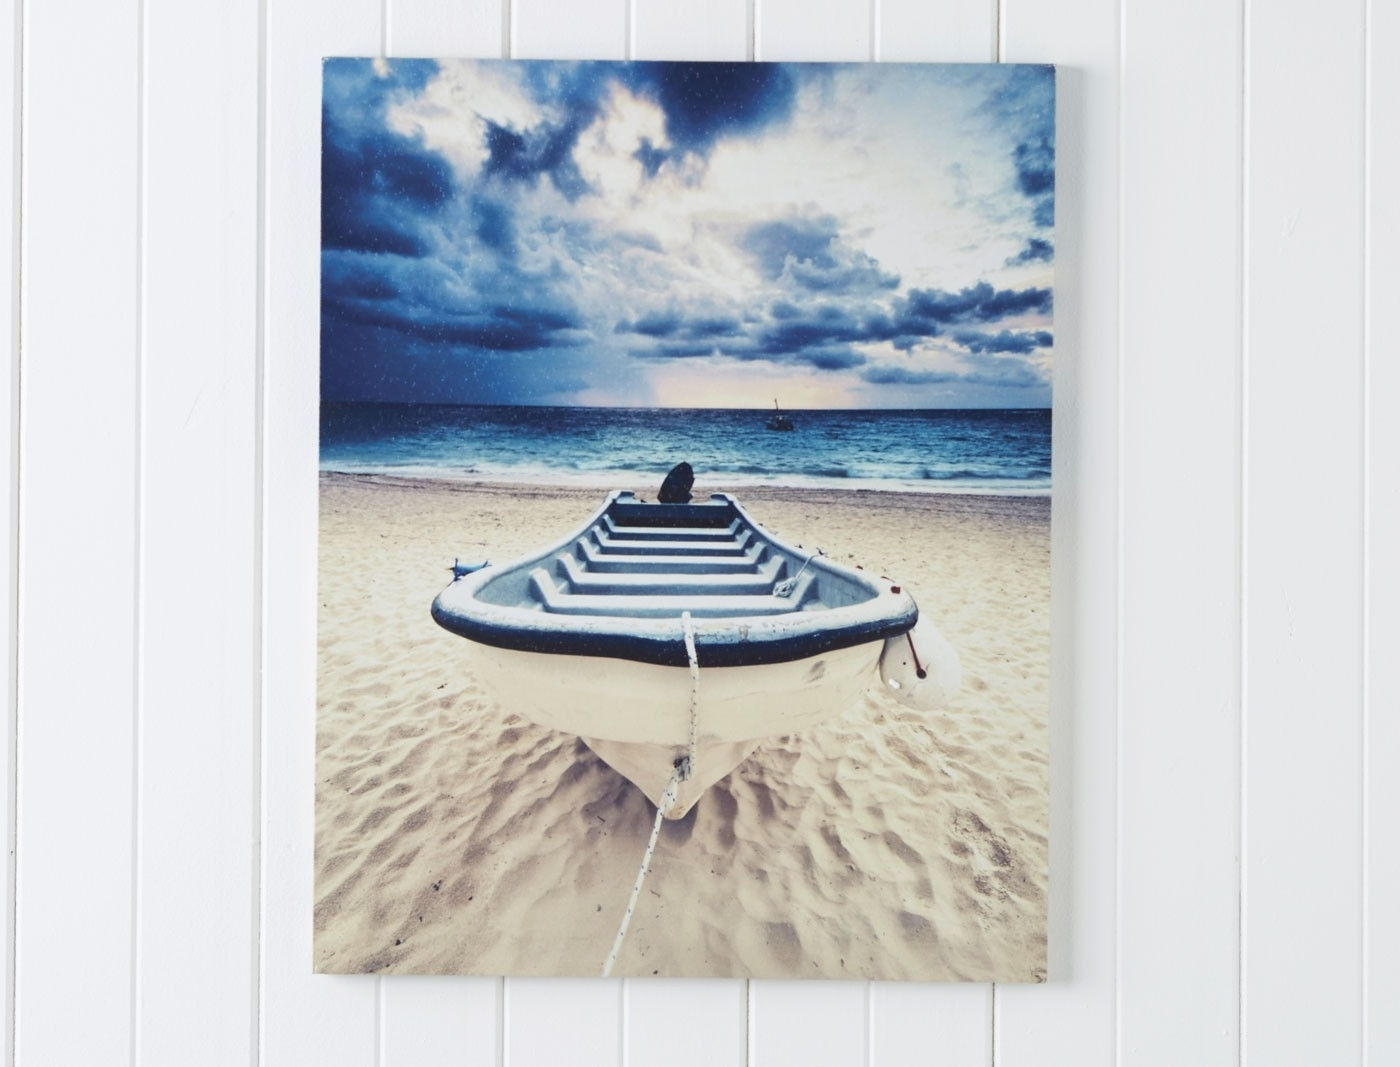 2017 Wall Art Boat With Navy Within Boat Wall Art (View 15 of 15)